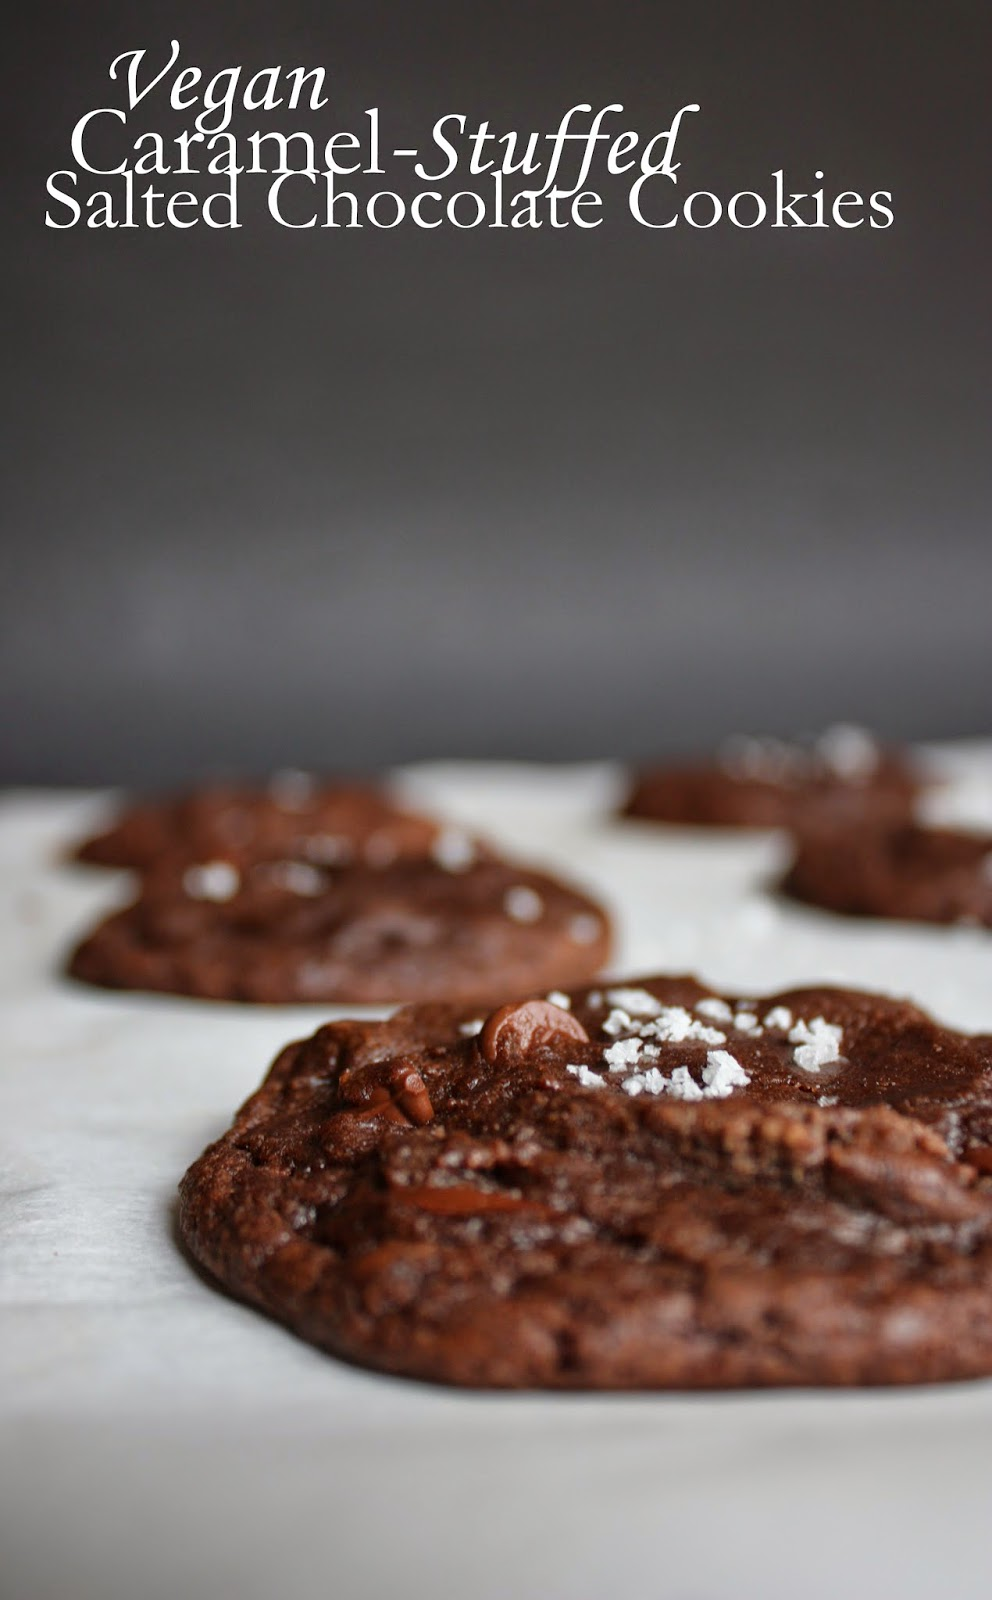 Vegan salted double chocolate cookies stuffed with homemade caramels